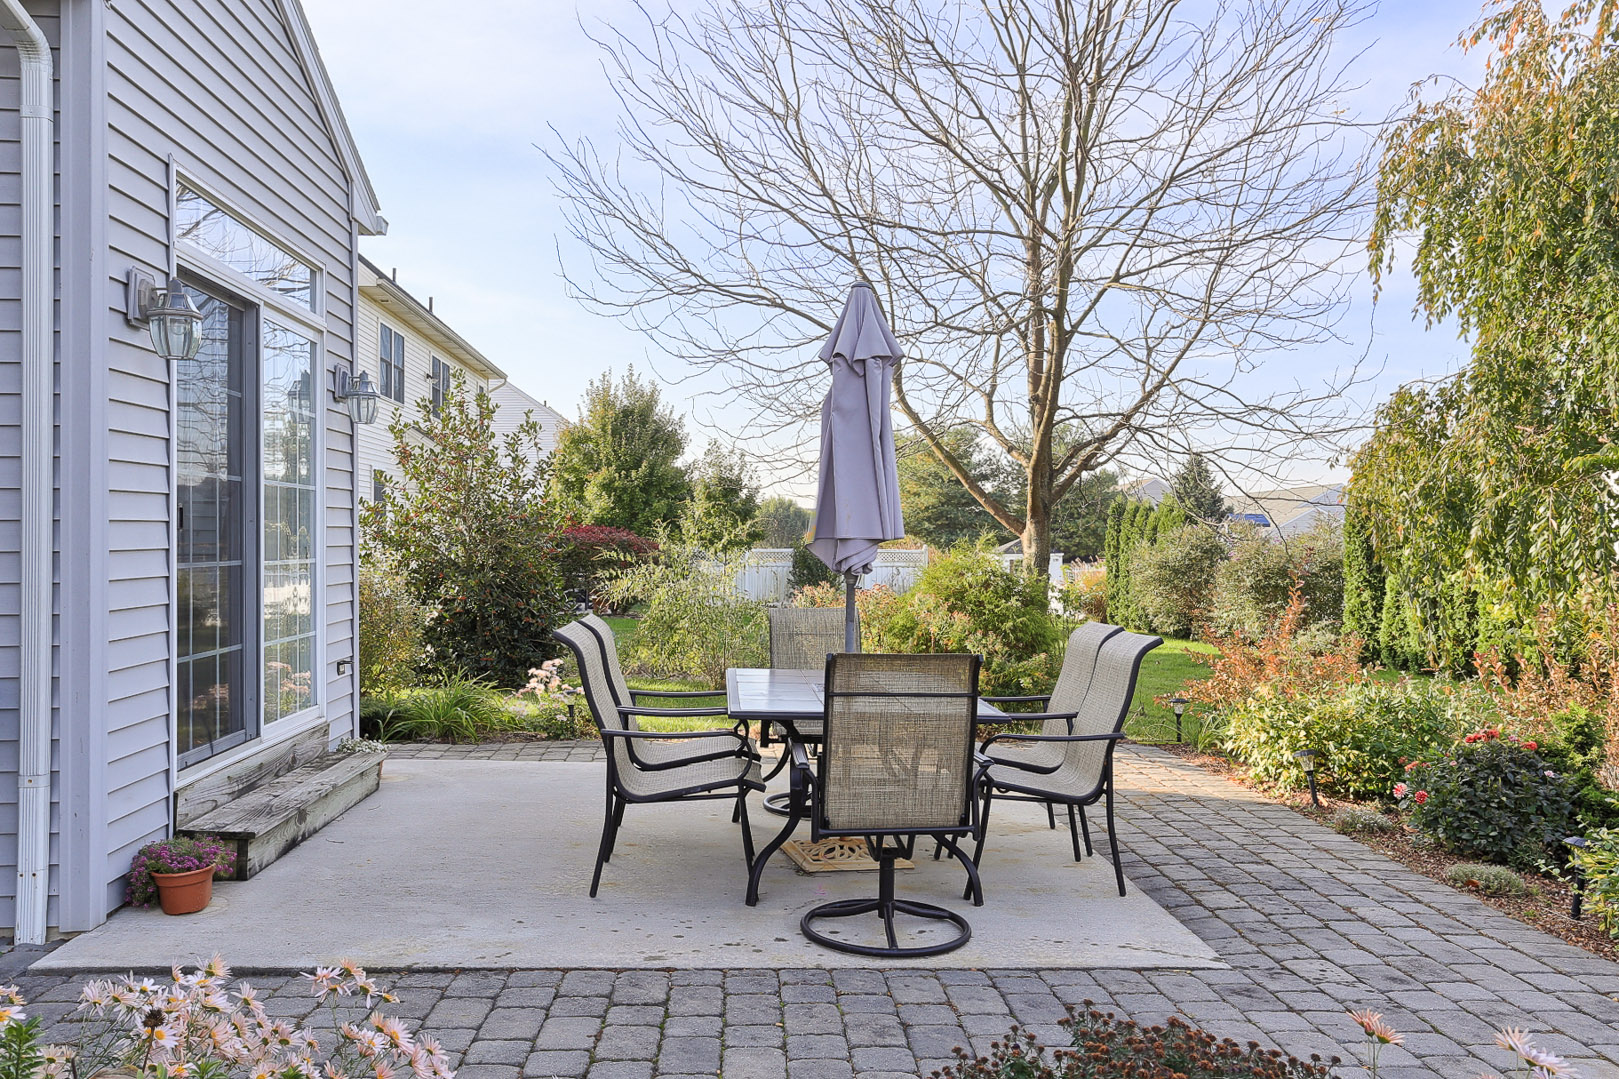 Additional photo for property listing at 324 Bloomfield Drive 324 Bloomfield Drivve Lititz, Pennsylvania 17543 United States